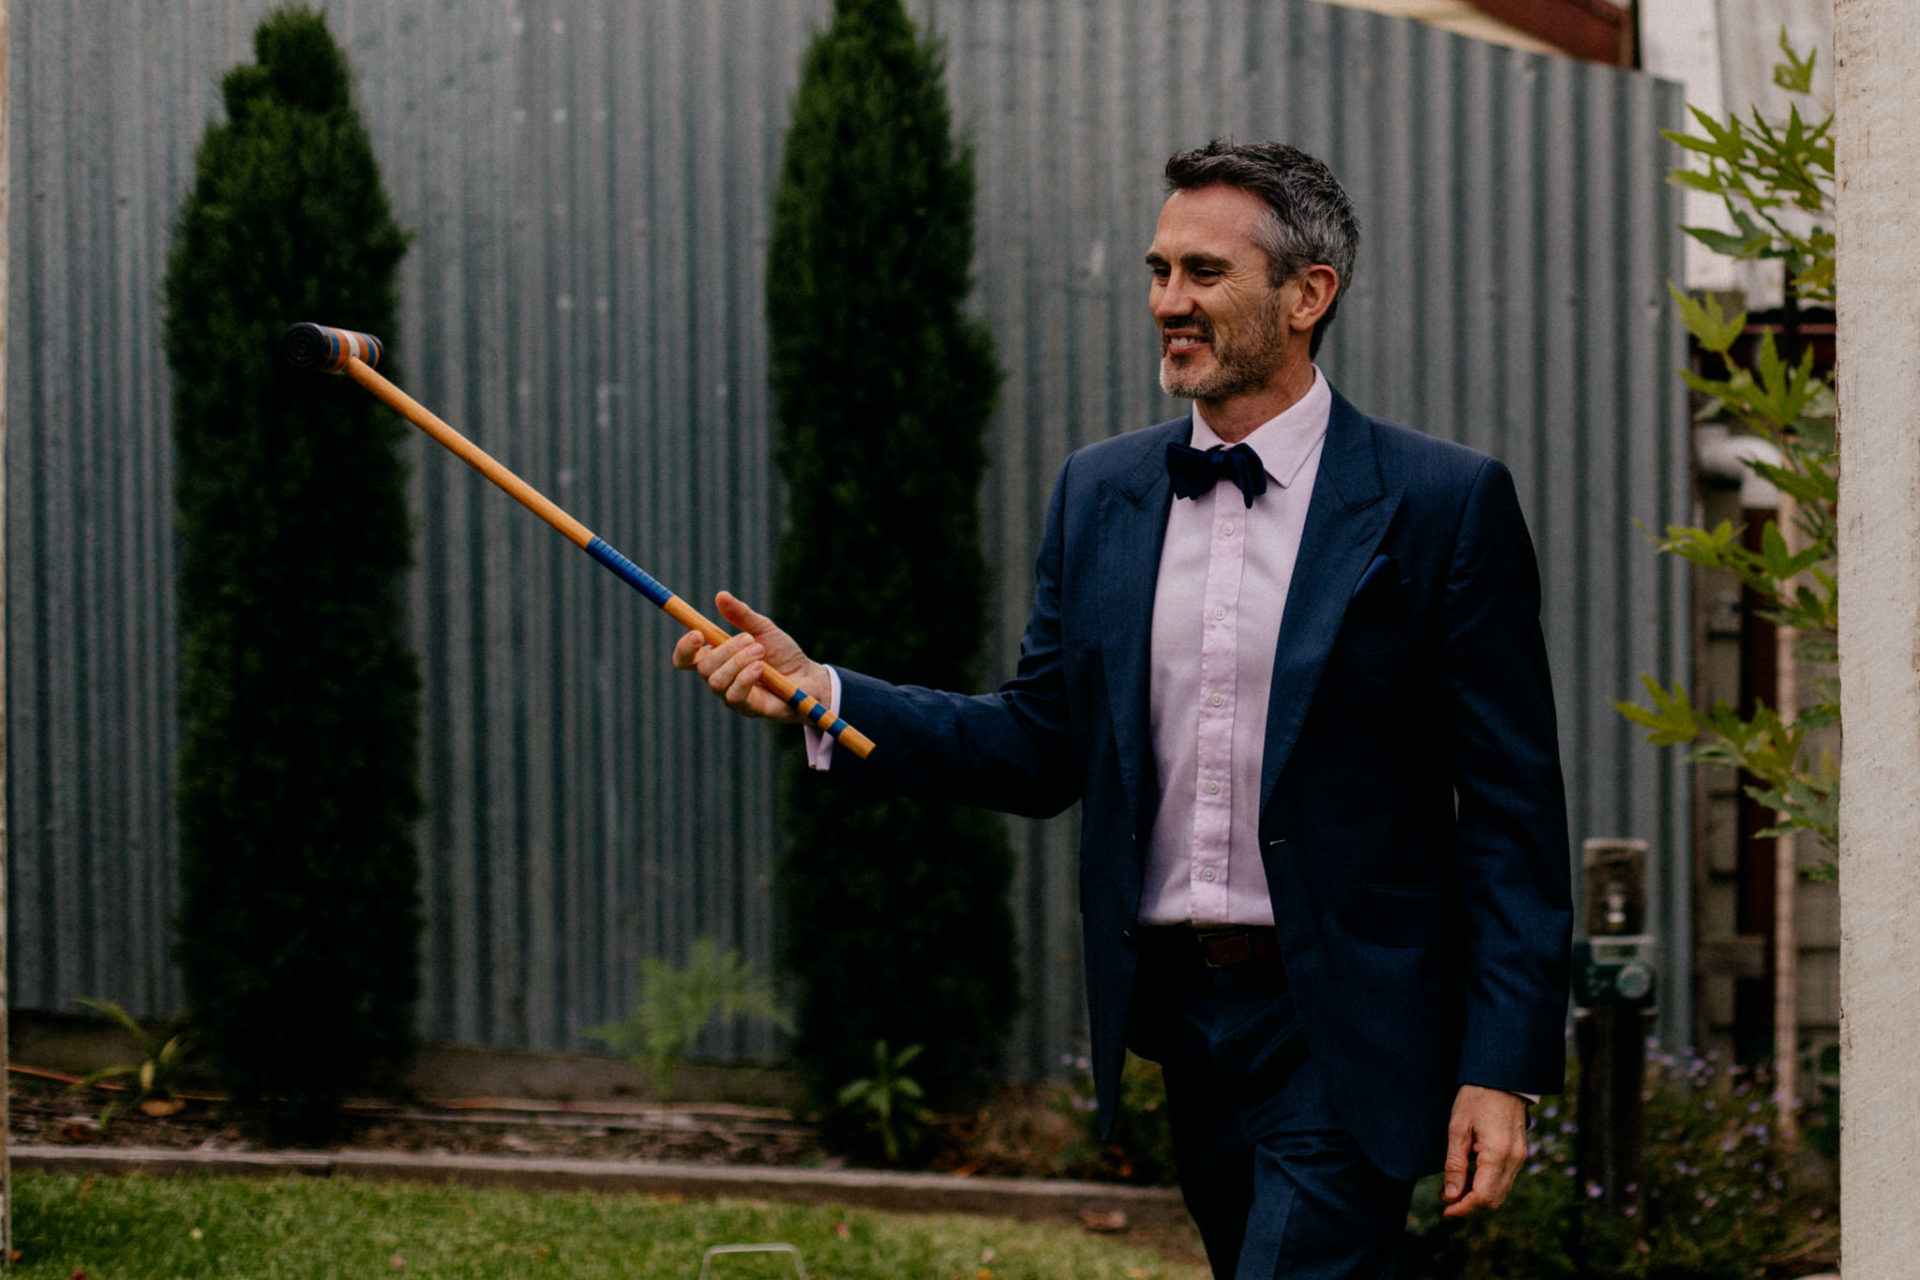 Melbourne Wedding Photographer-Queenscliff DIY garden wedding-outdoor games